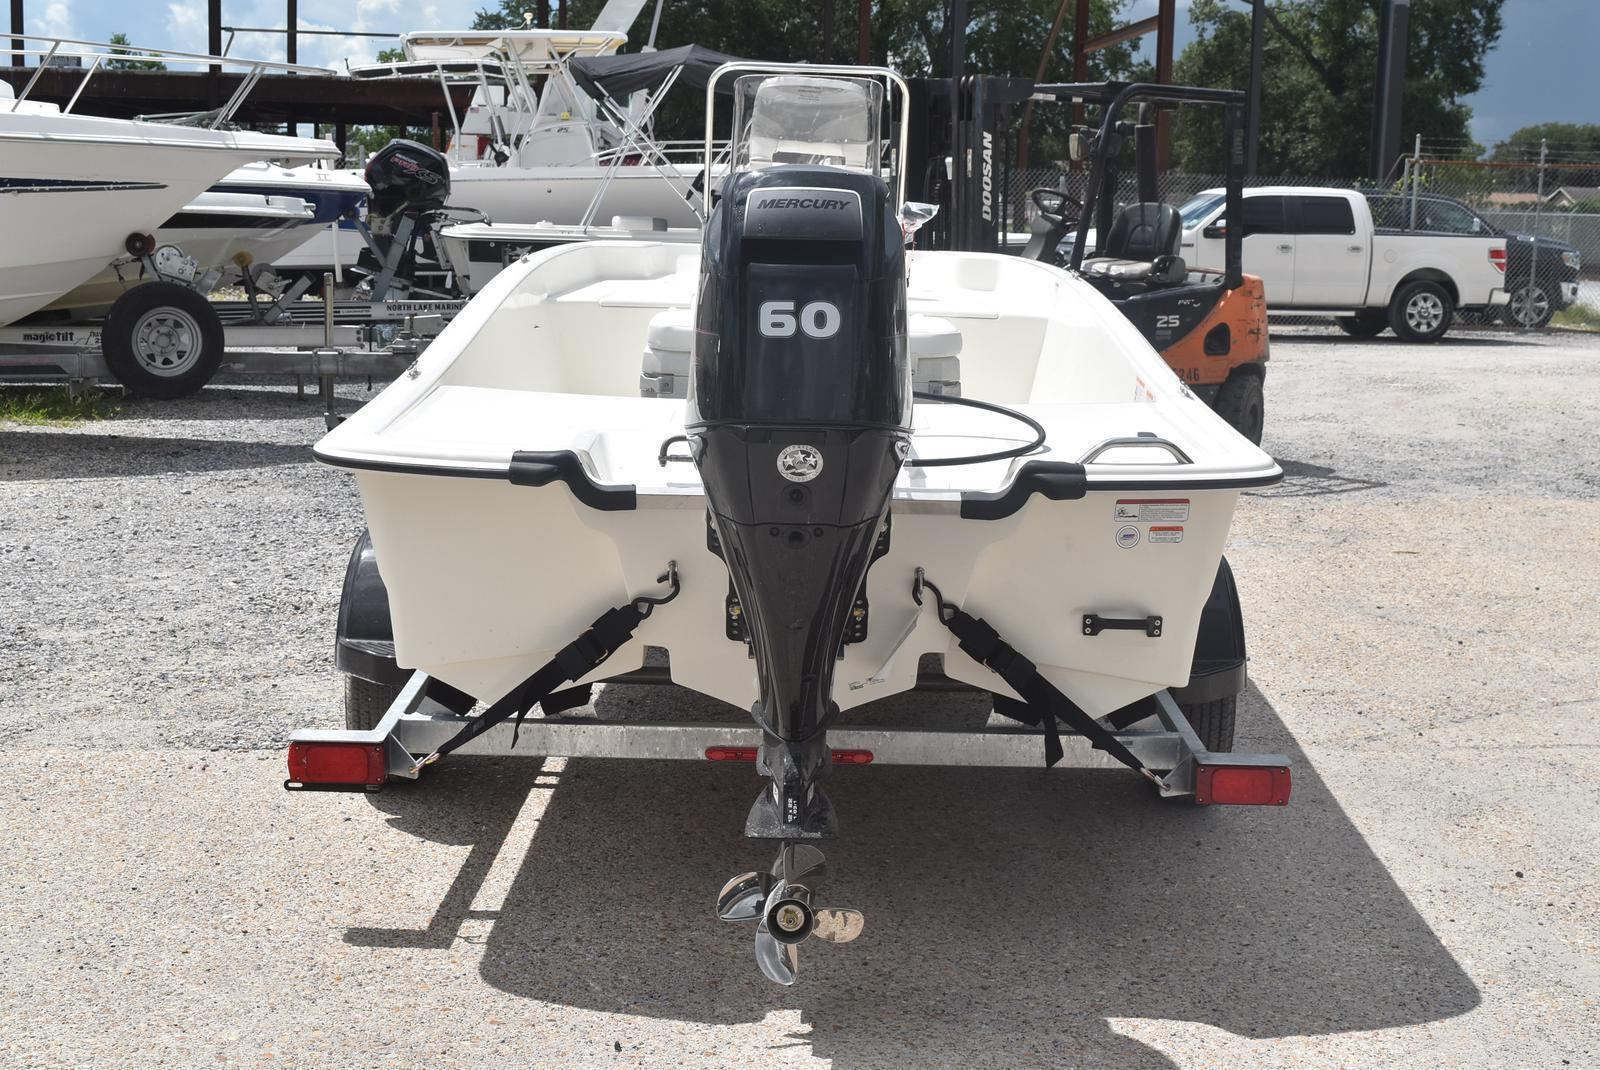 2020 Mako boat for sale, model of the boat is Pro Skiff 17, 75 ELPT & Image # 575 of 702